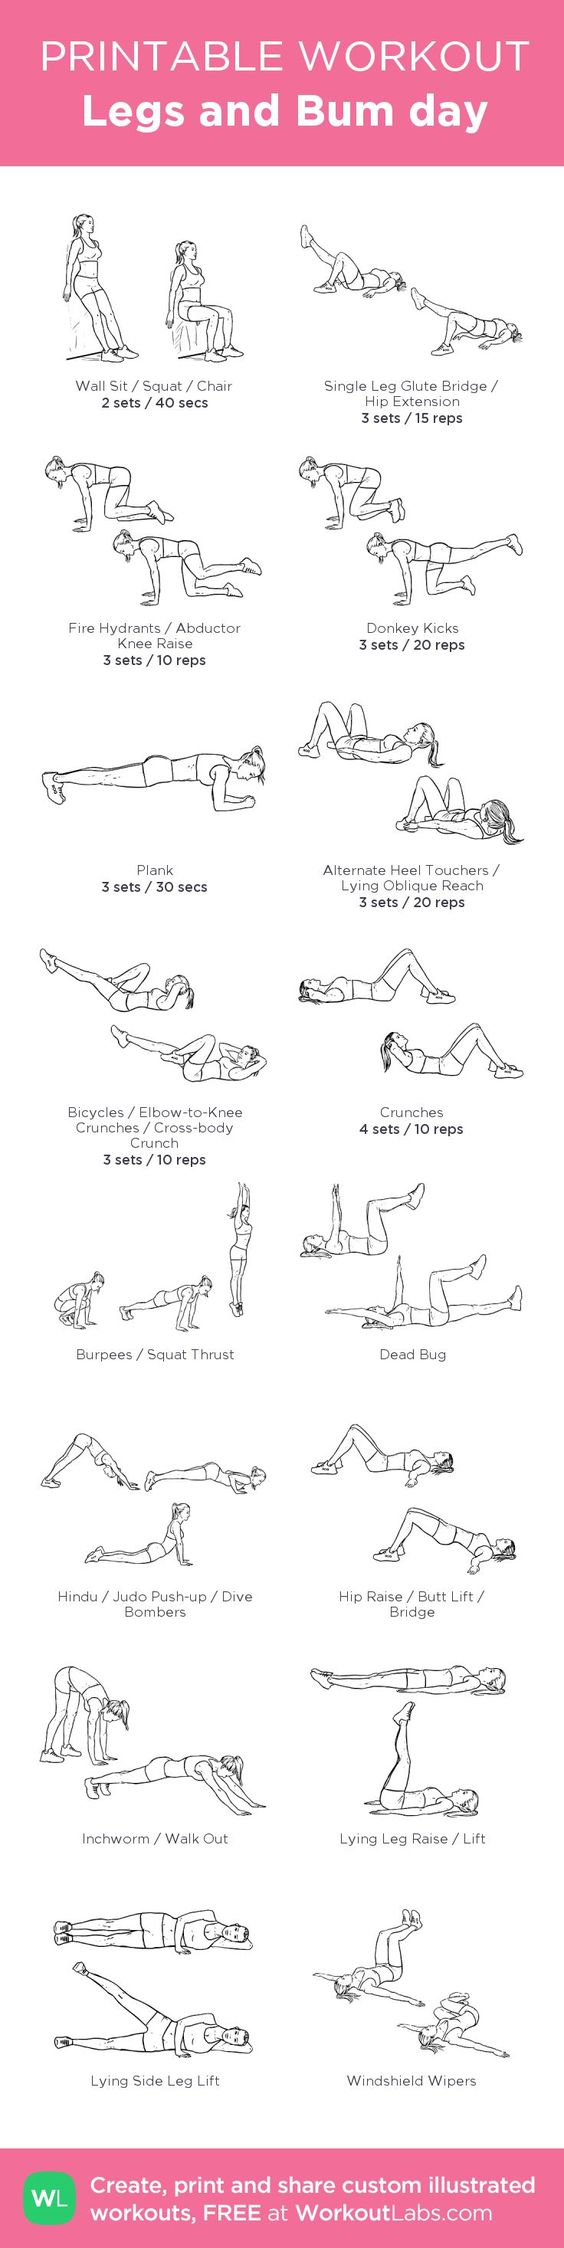 Legs and Bum day:my visual workout created at WorkoutLabs.com • Click through to customize and download as a FREE PDF! #customworkout